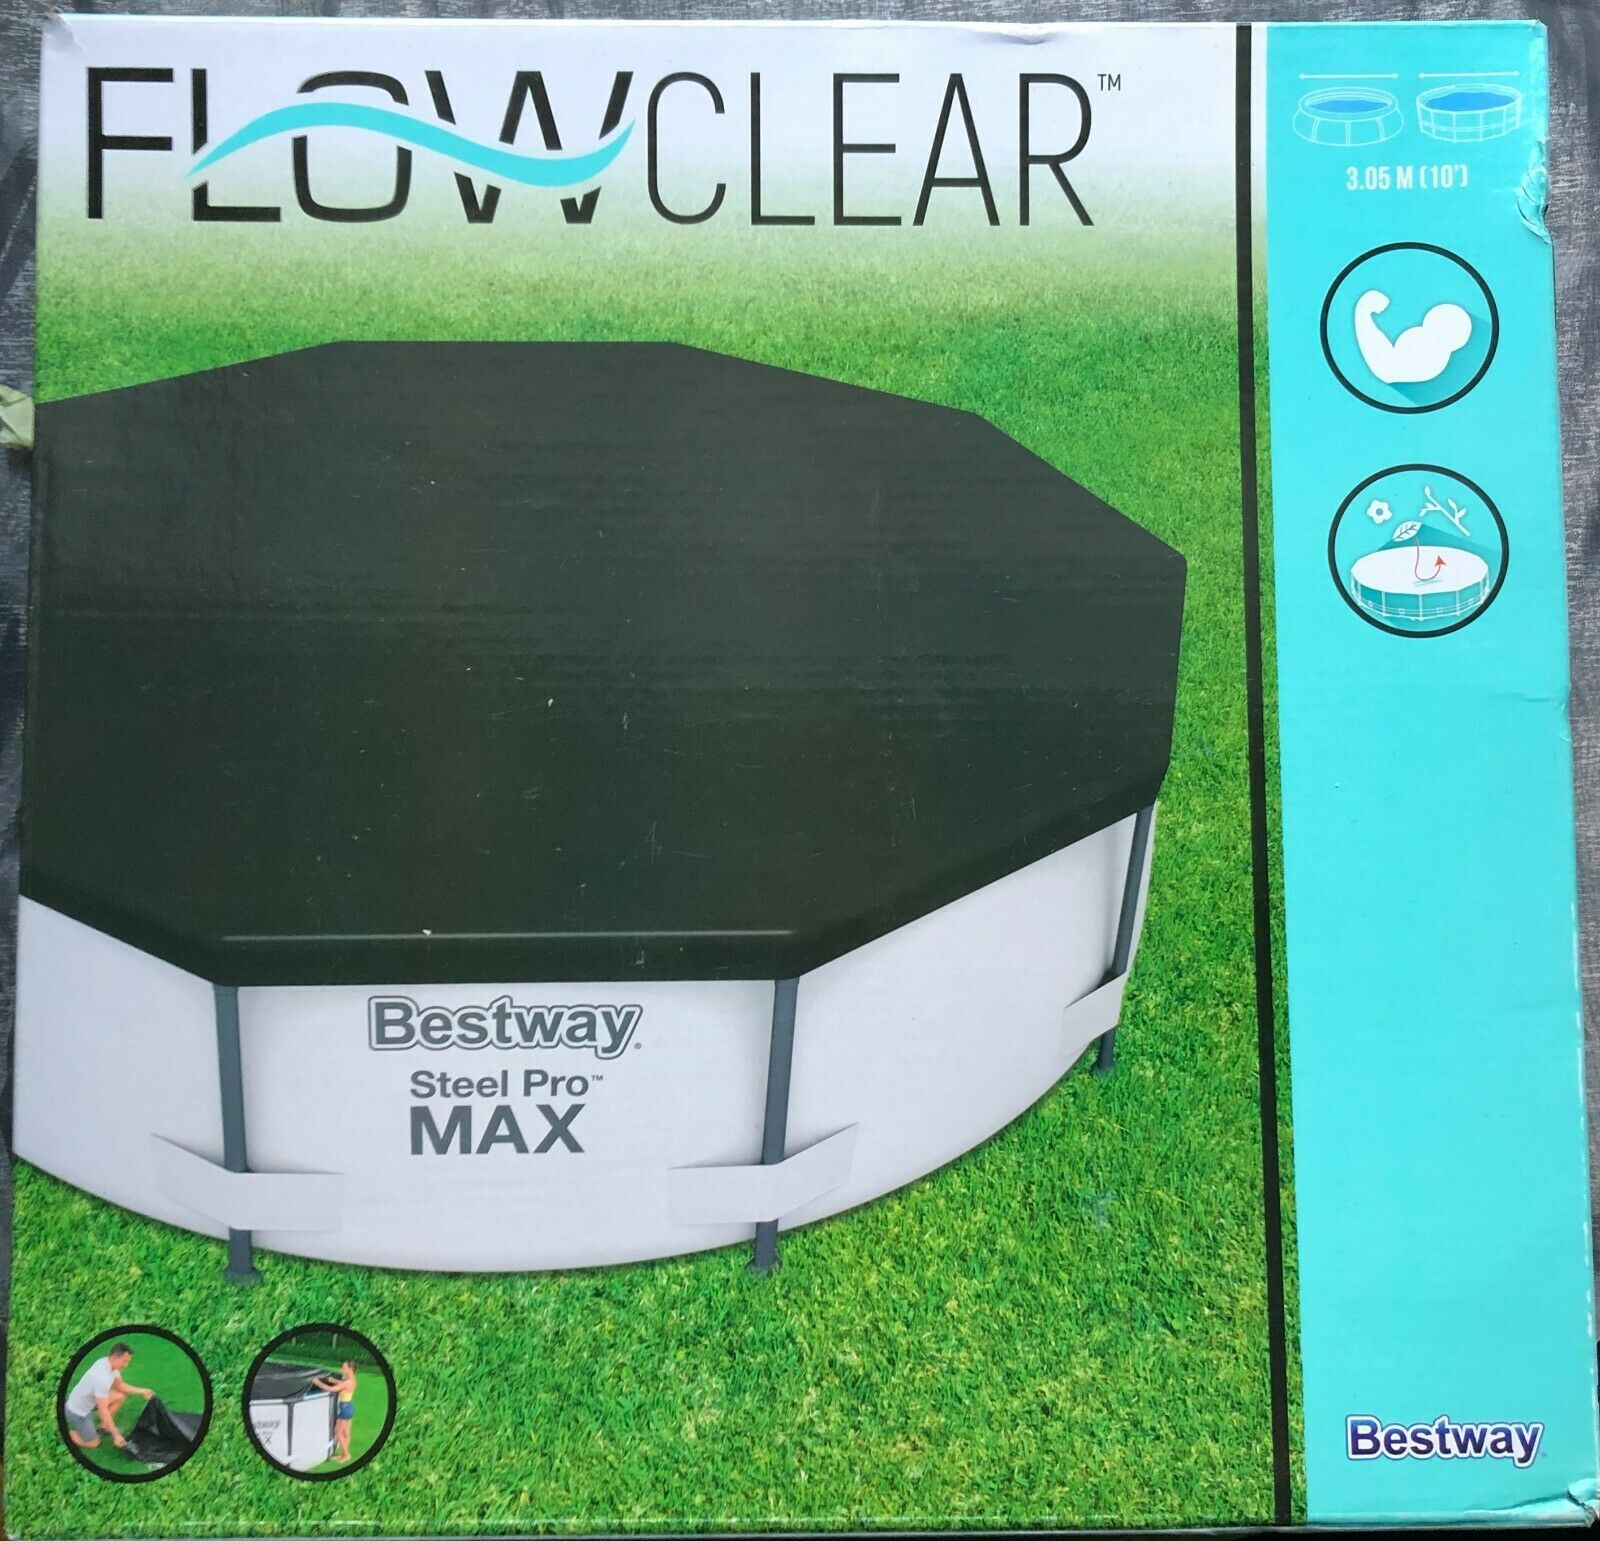 Bestway Steel Pro FLOW CLEAR 10ft pool cover NEW and UNUSED IN SEALED BOX